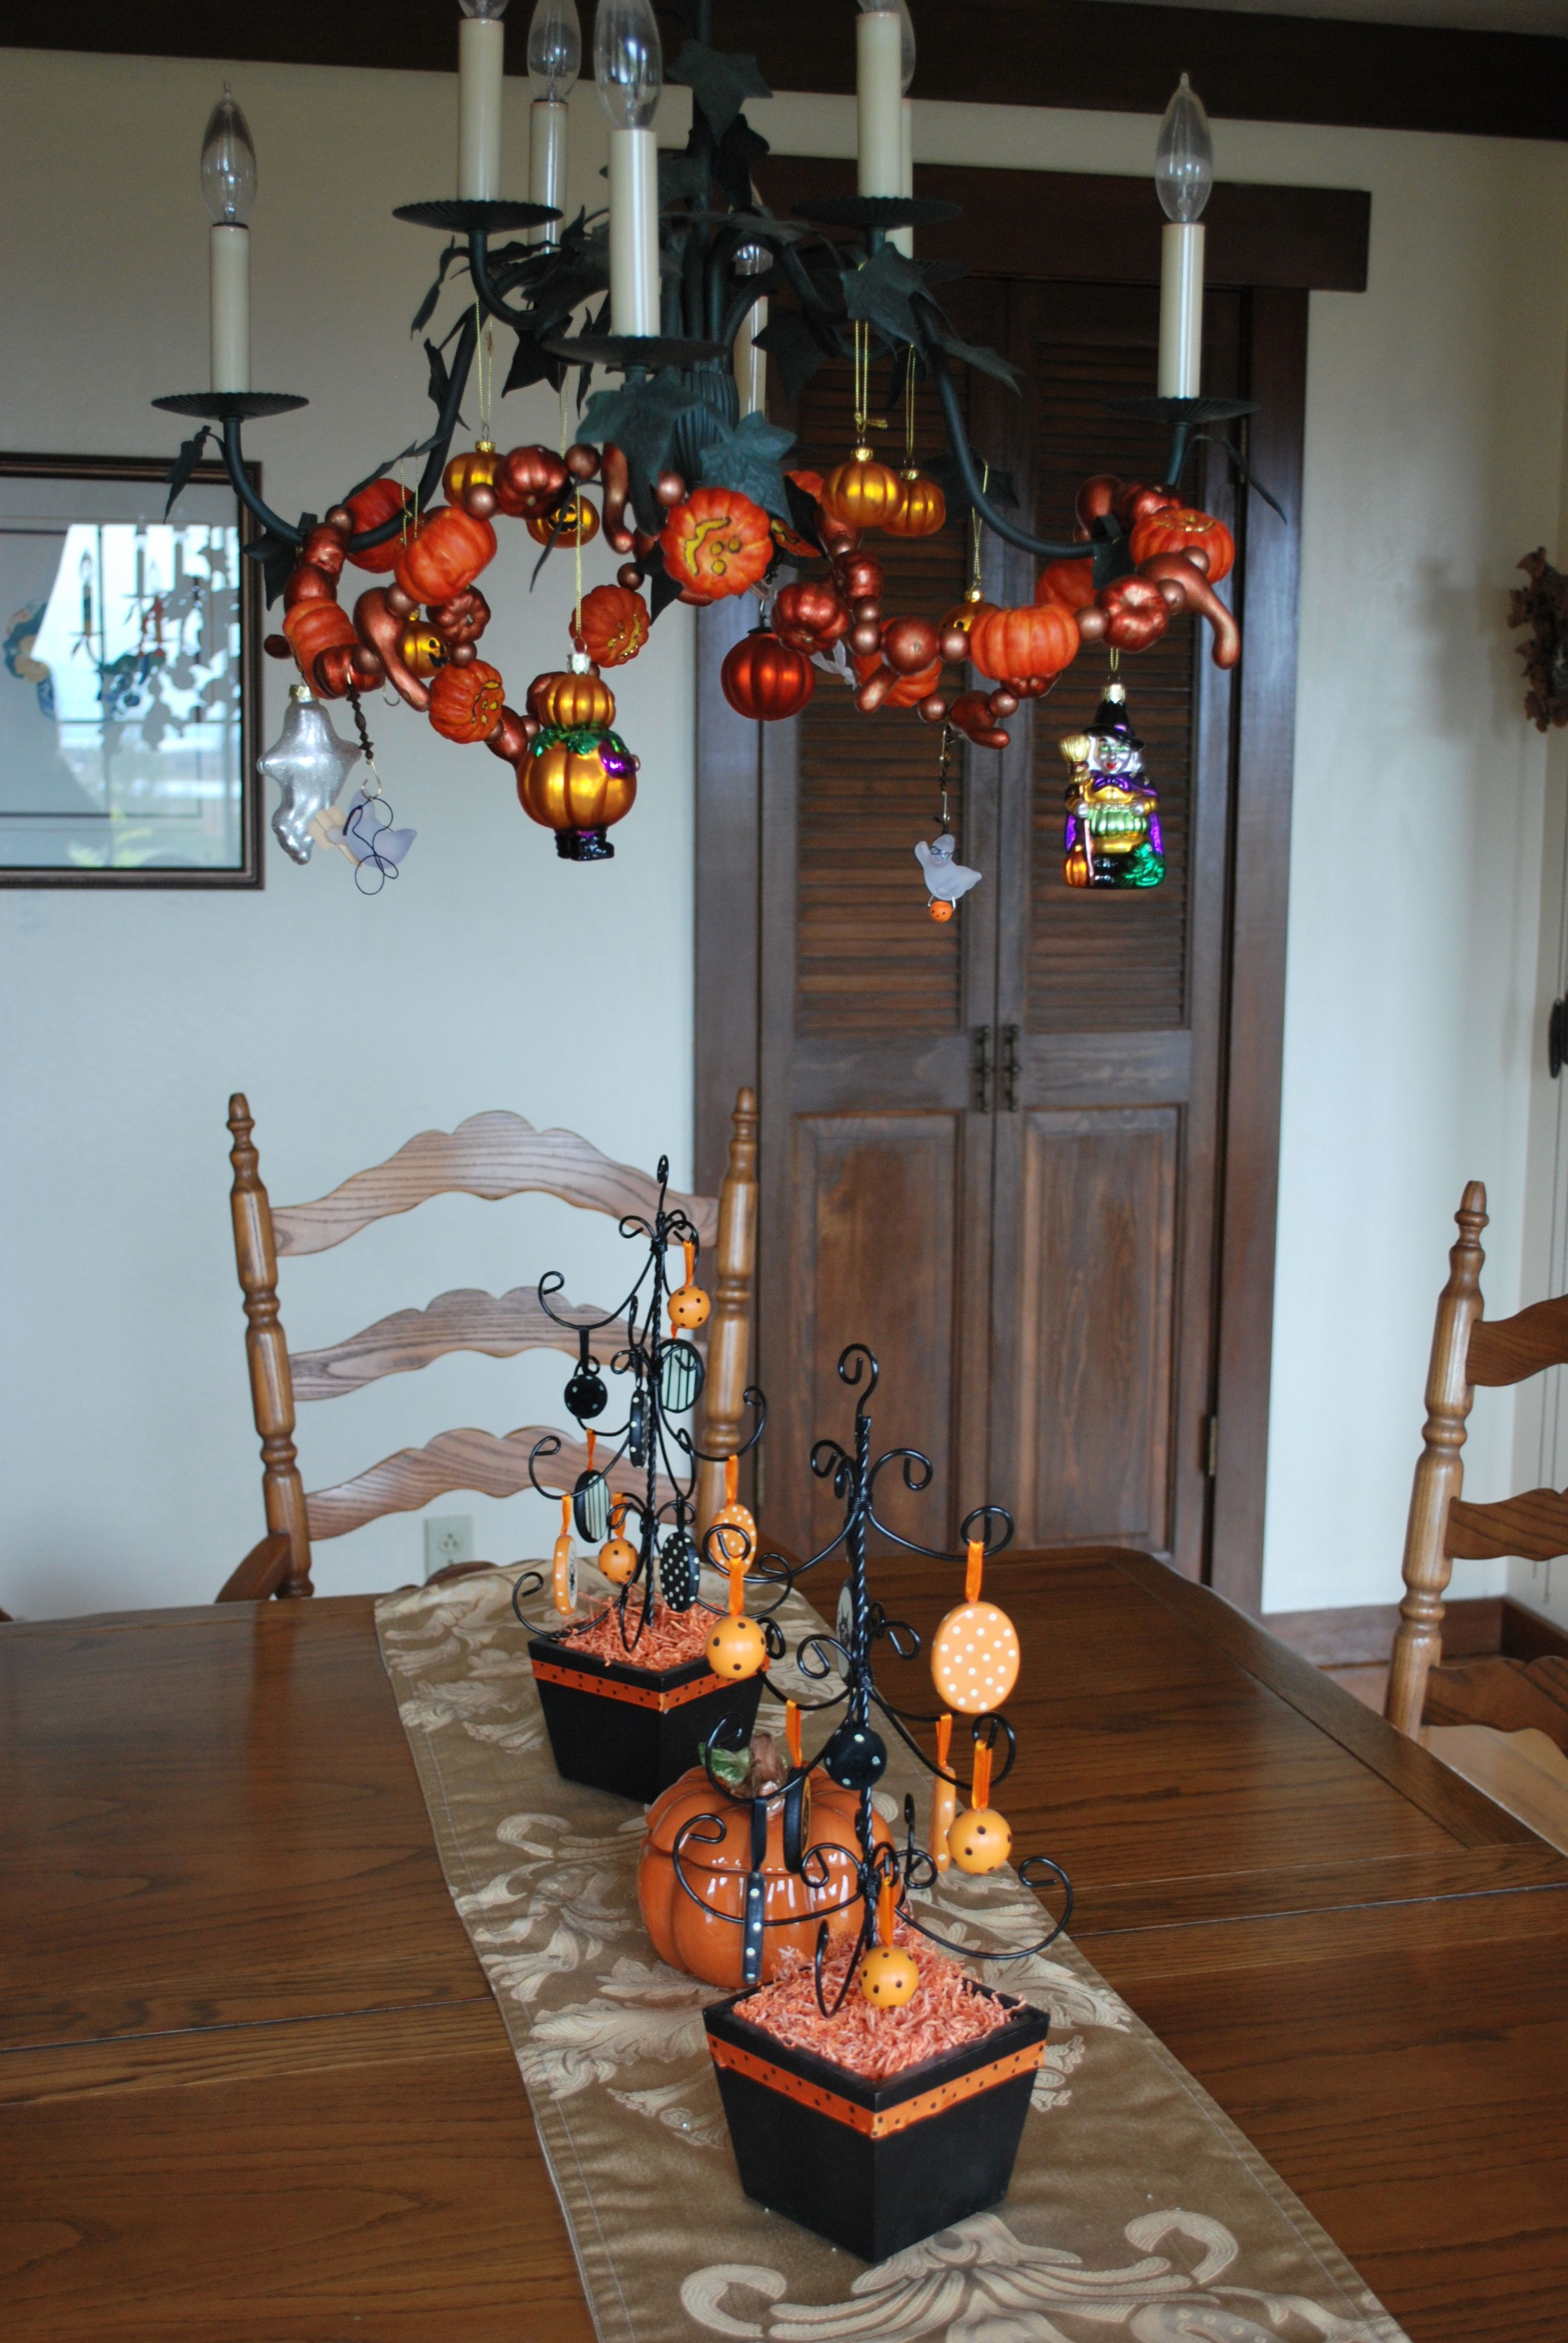 Dining Table Halloween Dining Table Decorations : Halloween Dining Table from diningtabletoday.blogspot.com size 2592 x 3872 jpeg 930kB